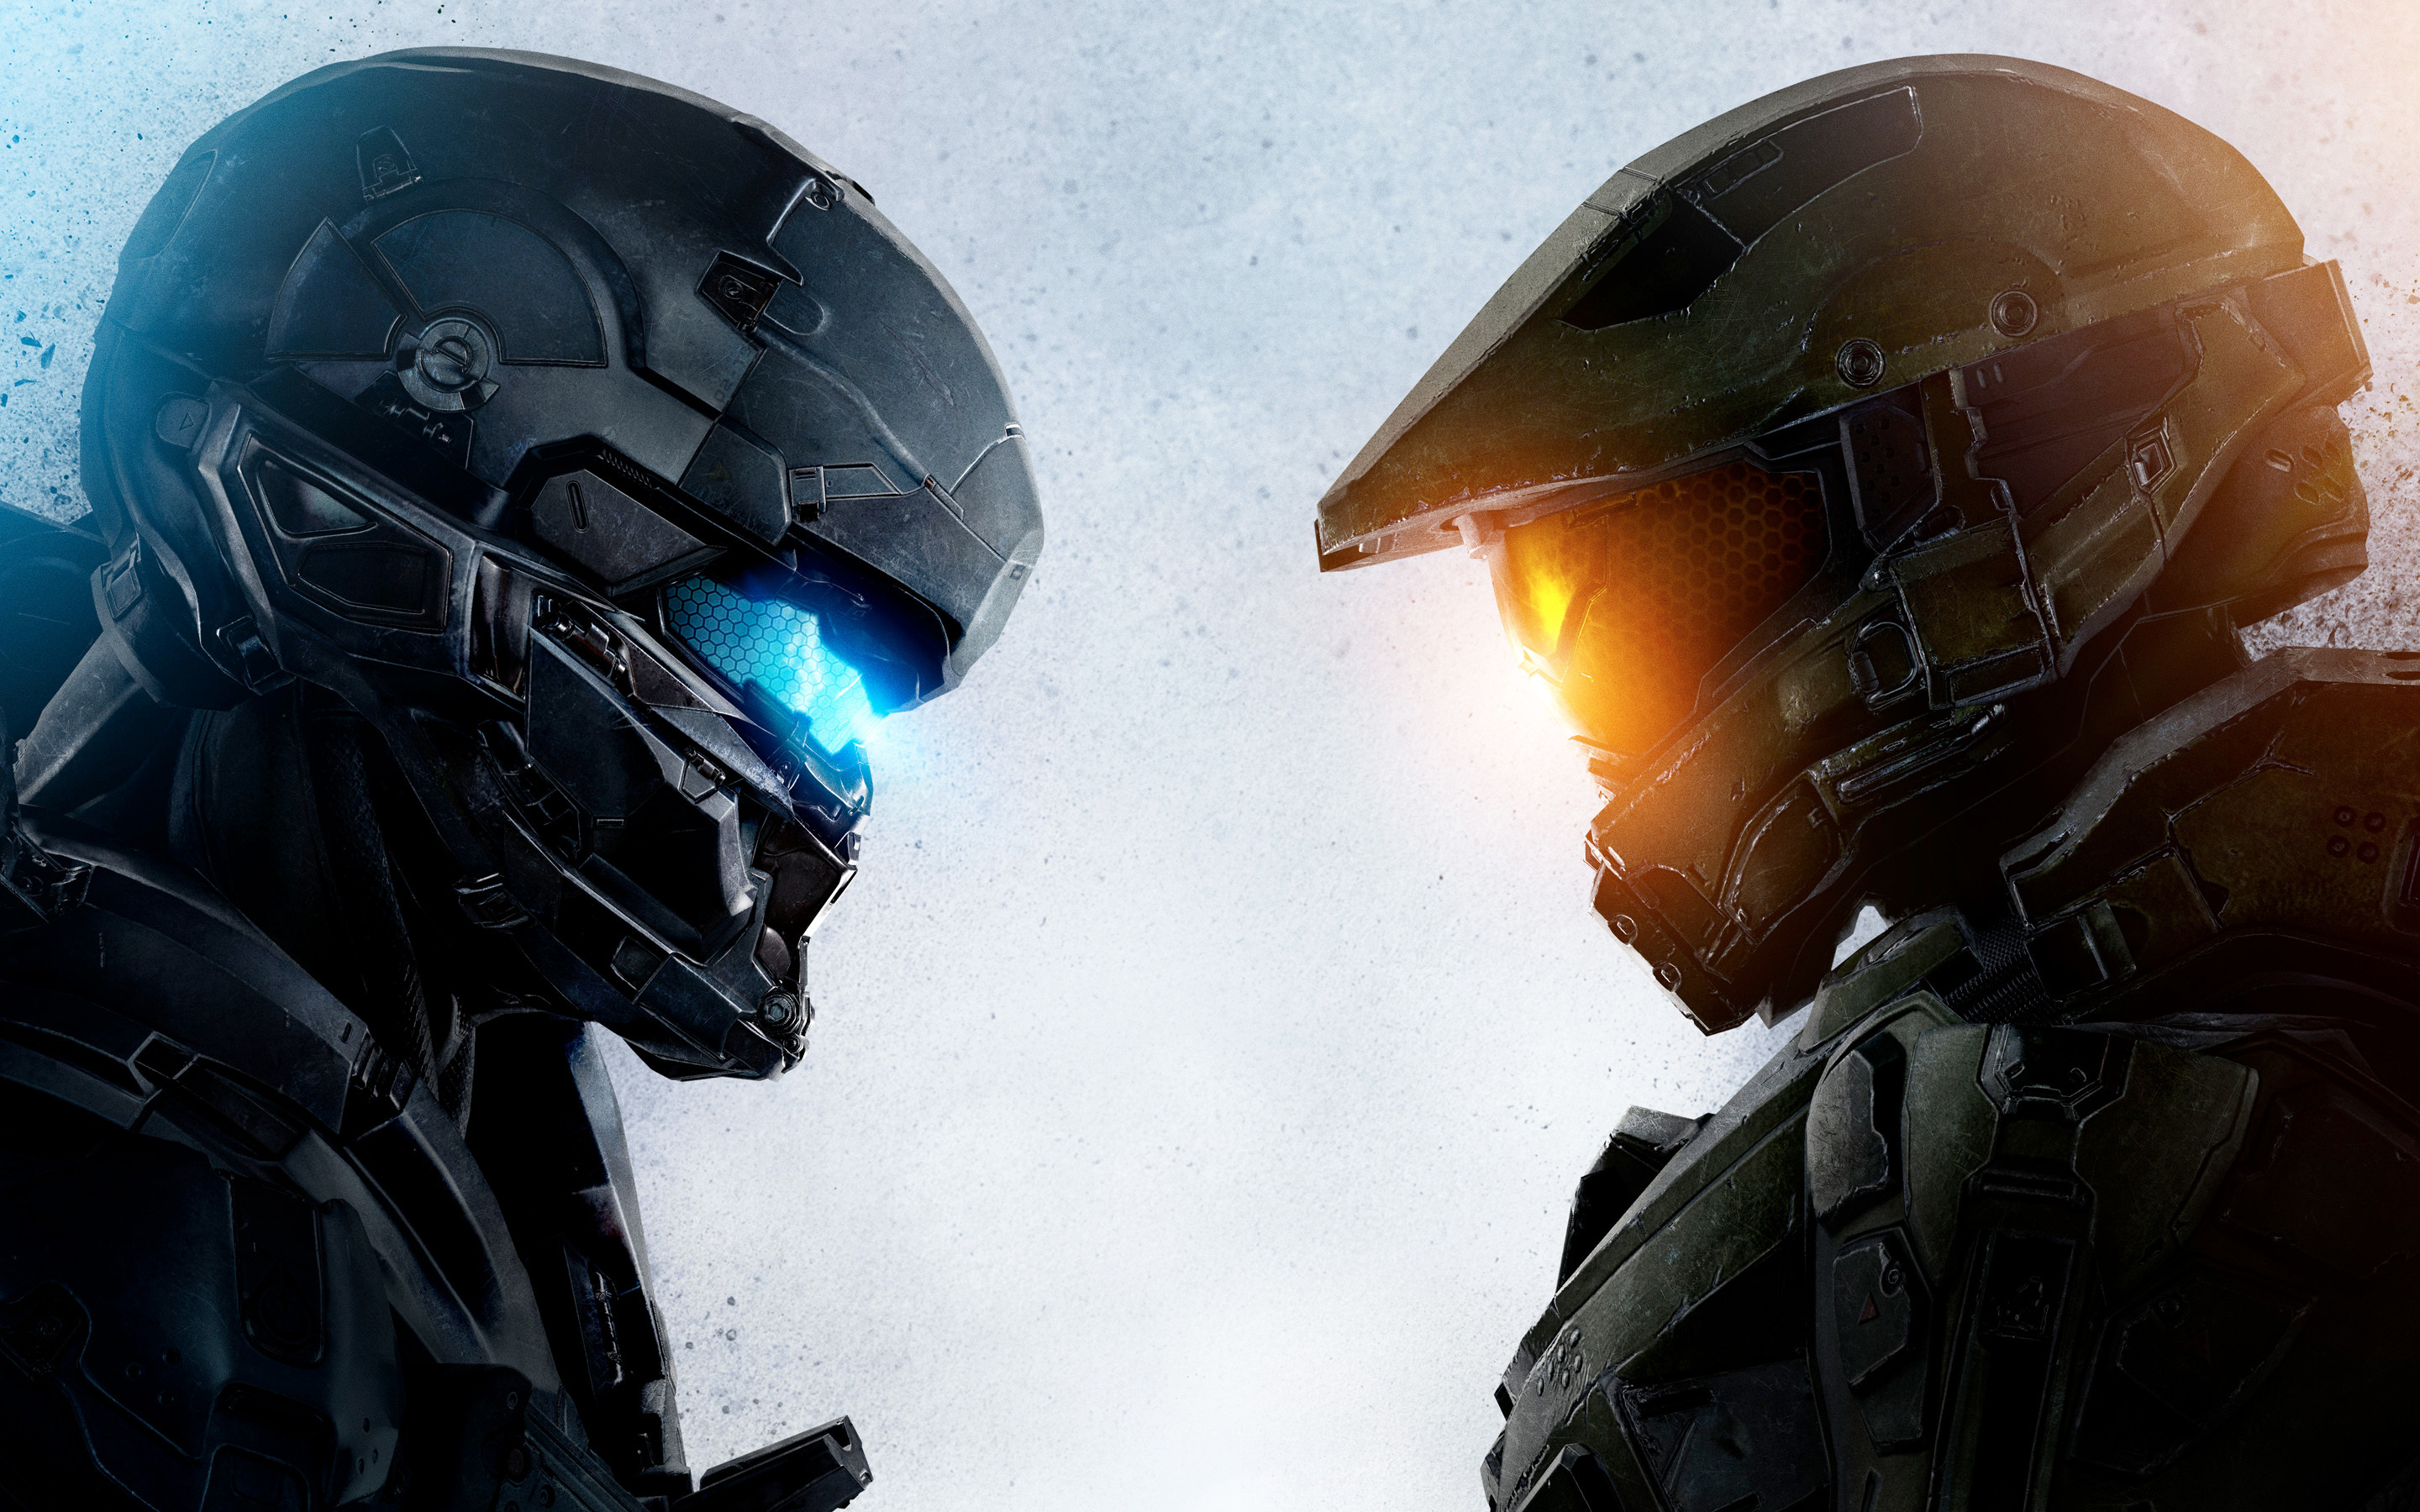 2015 Halo 5 Guardians Wallpapers   HD Wallpapers